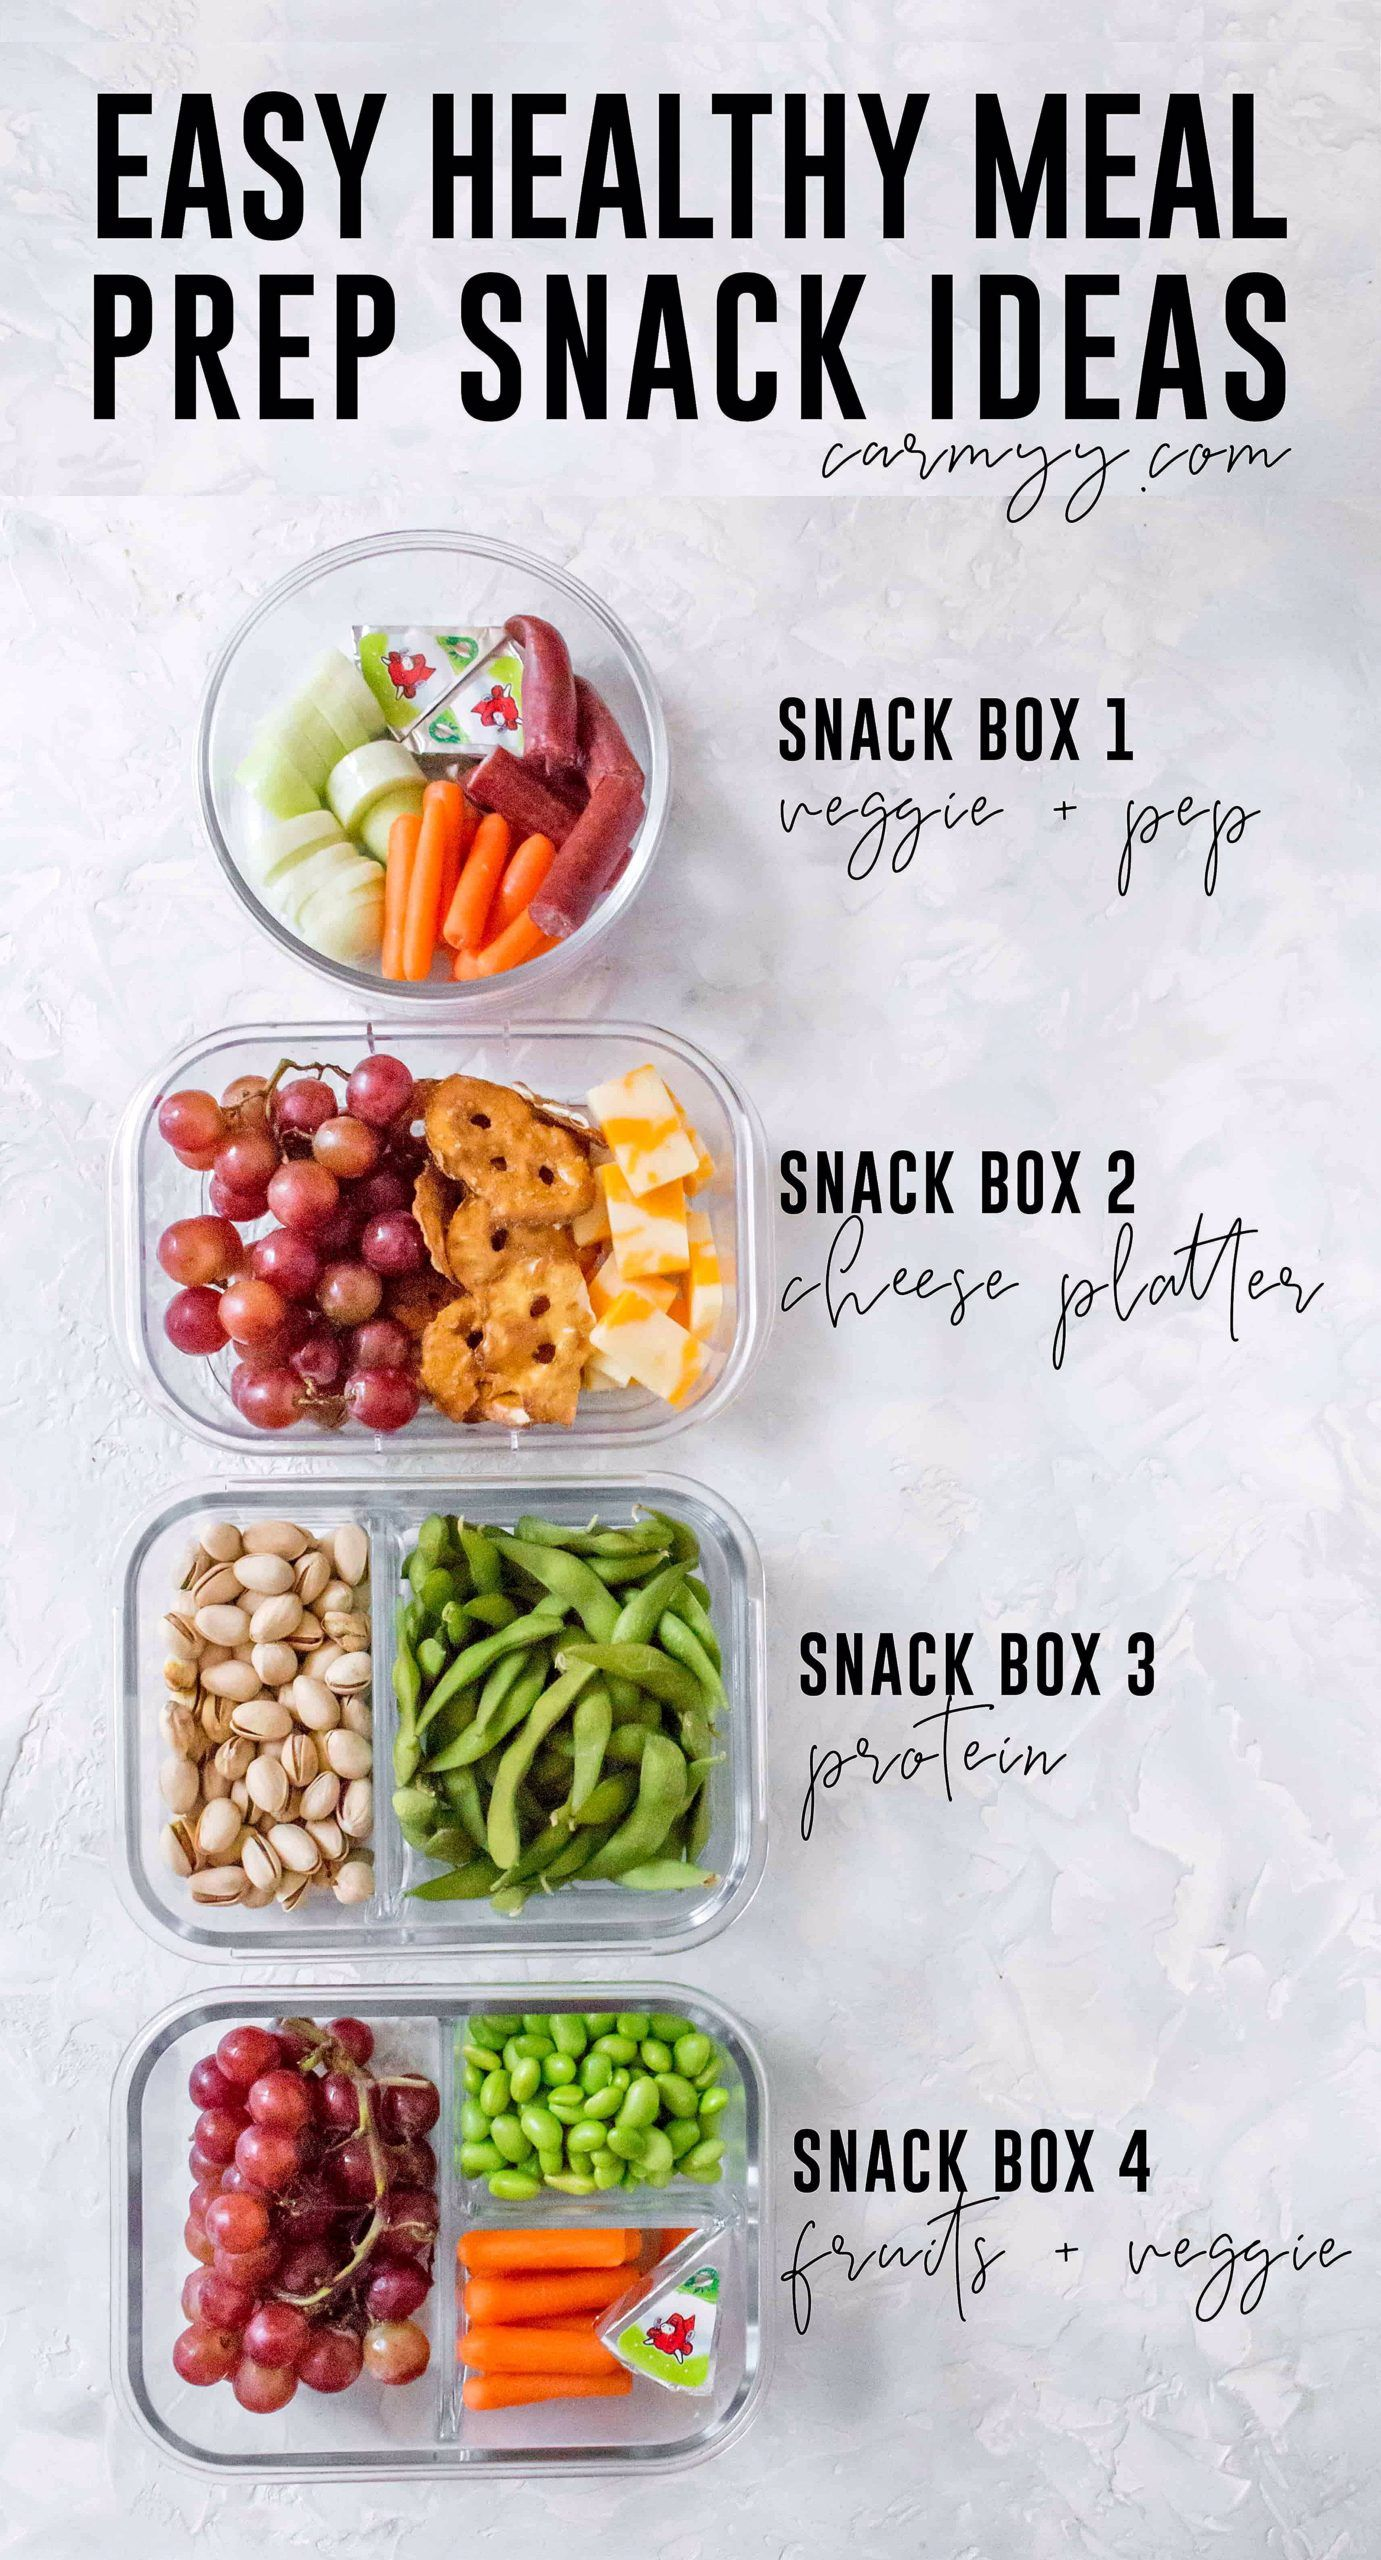 Looking for some Easy Healthy Meal Prep Snack Ideas Here are 4 meal prep snack  Looking for some Easy Healthy Meal Prep Snack Ideas Here are 4 meal prep snack